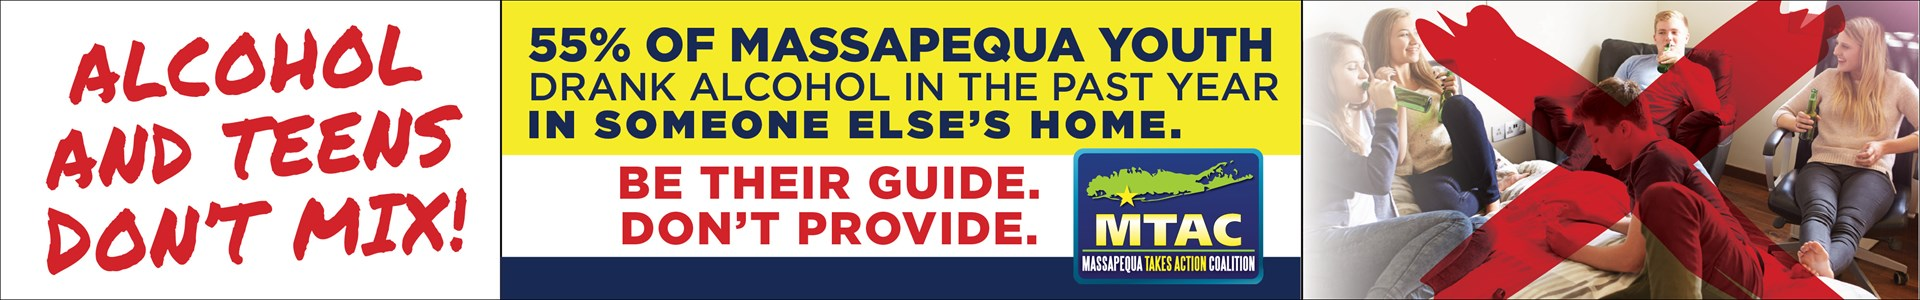 Massapequa Takes Action - Teens and Alcohol Don't Mix